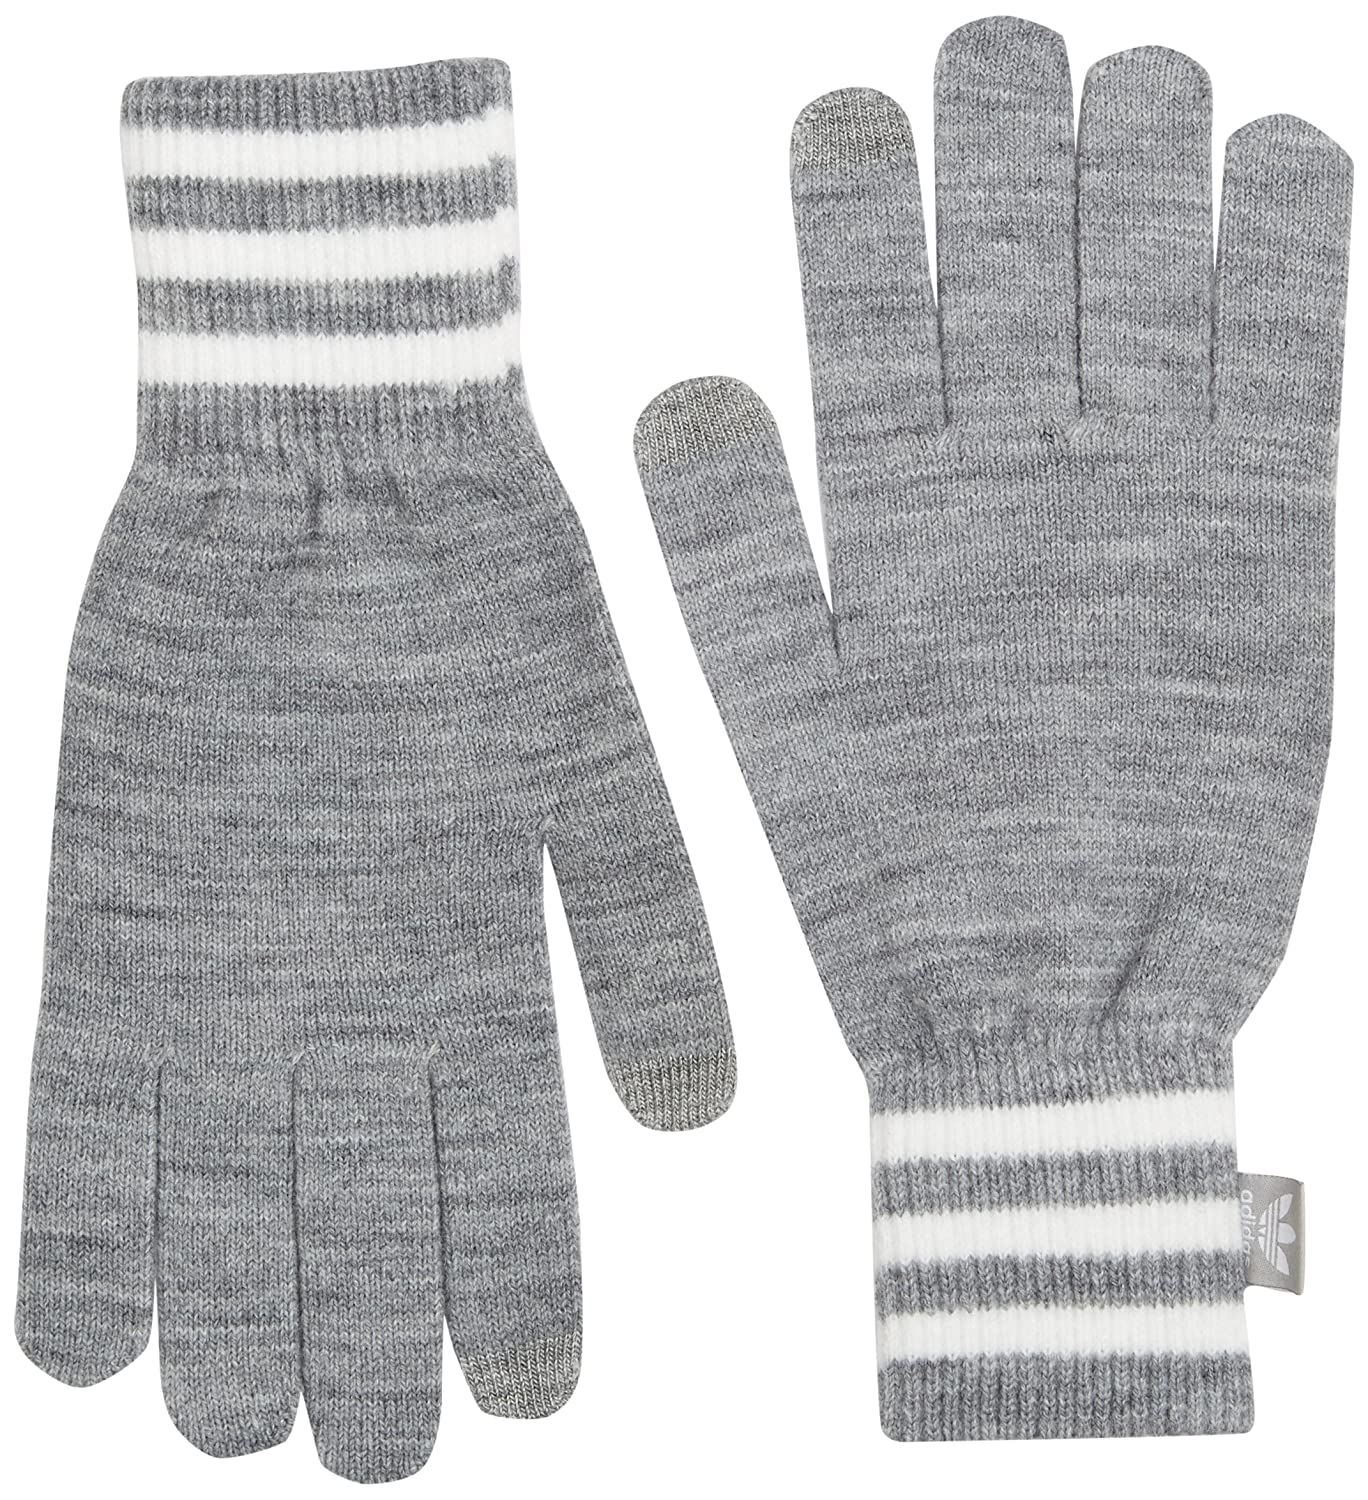 Adidas Écran Tactile Gants Small Gris Blanc  Amazon.fr  Sports et Loisirs e480b6d8cd4